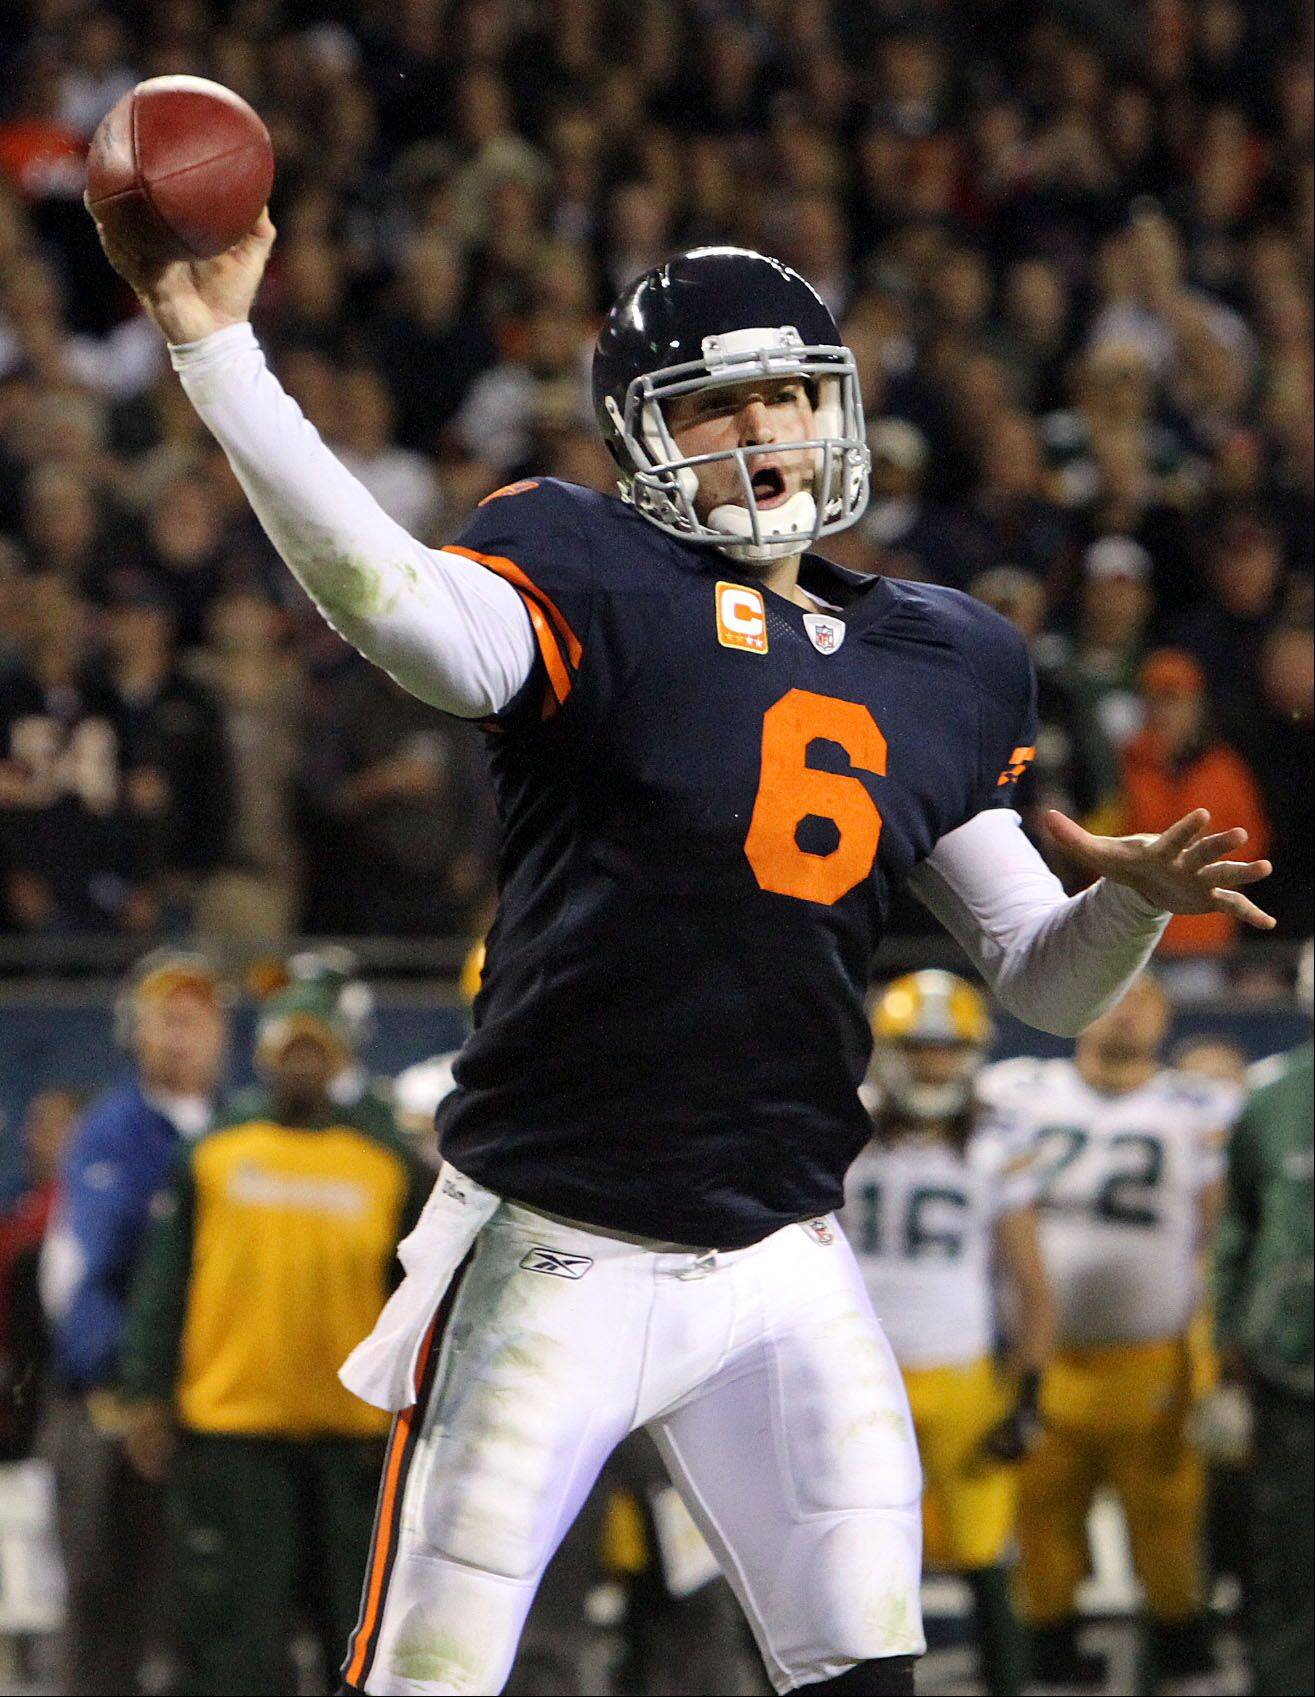 While quarterback Jay Cutler has had some bad prime-team performances as a Bear, he's 5-1 on Monday nights. The Bears take on the Lions this Monday at Soldier Field.